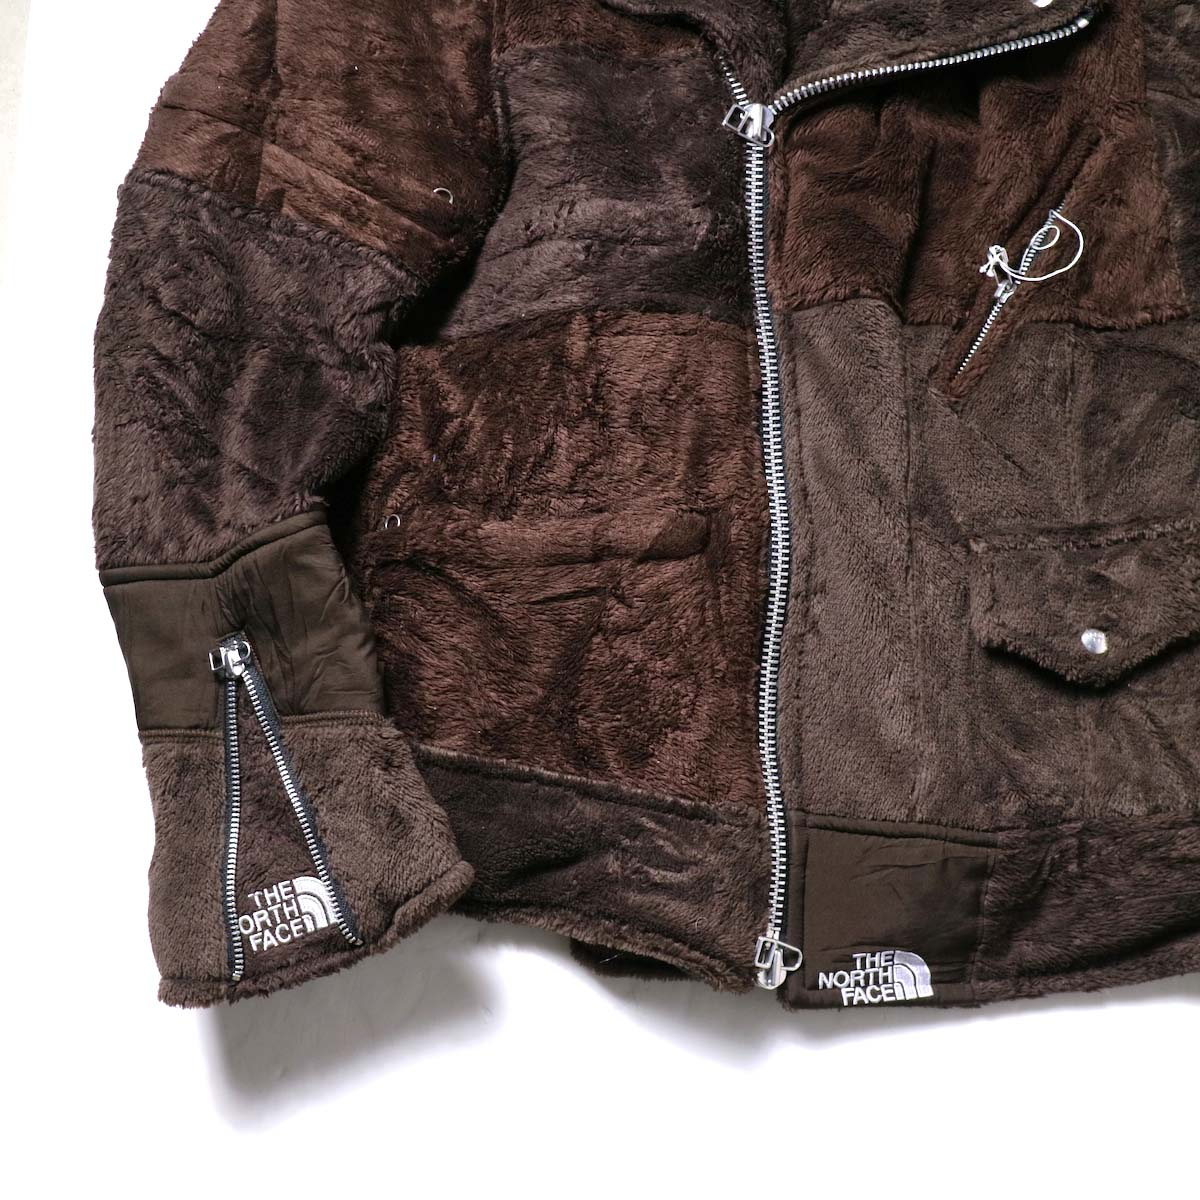 OLD PARK / Oversized Riders Jacket -Outdoor (Brown)袖、裾